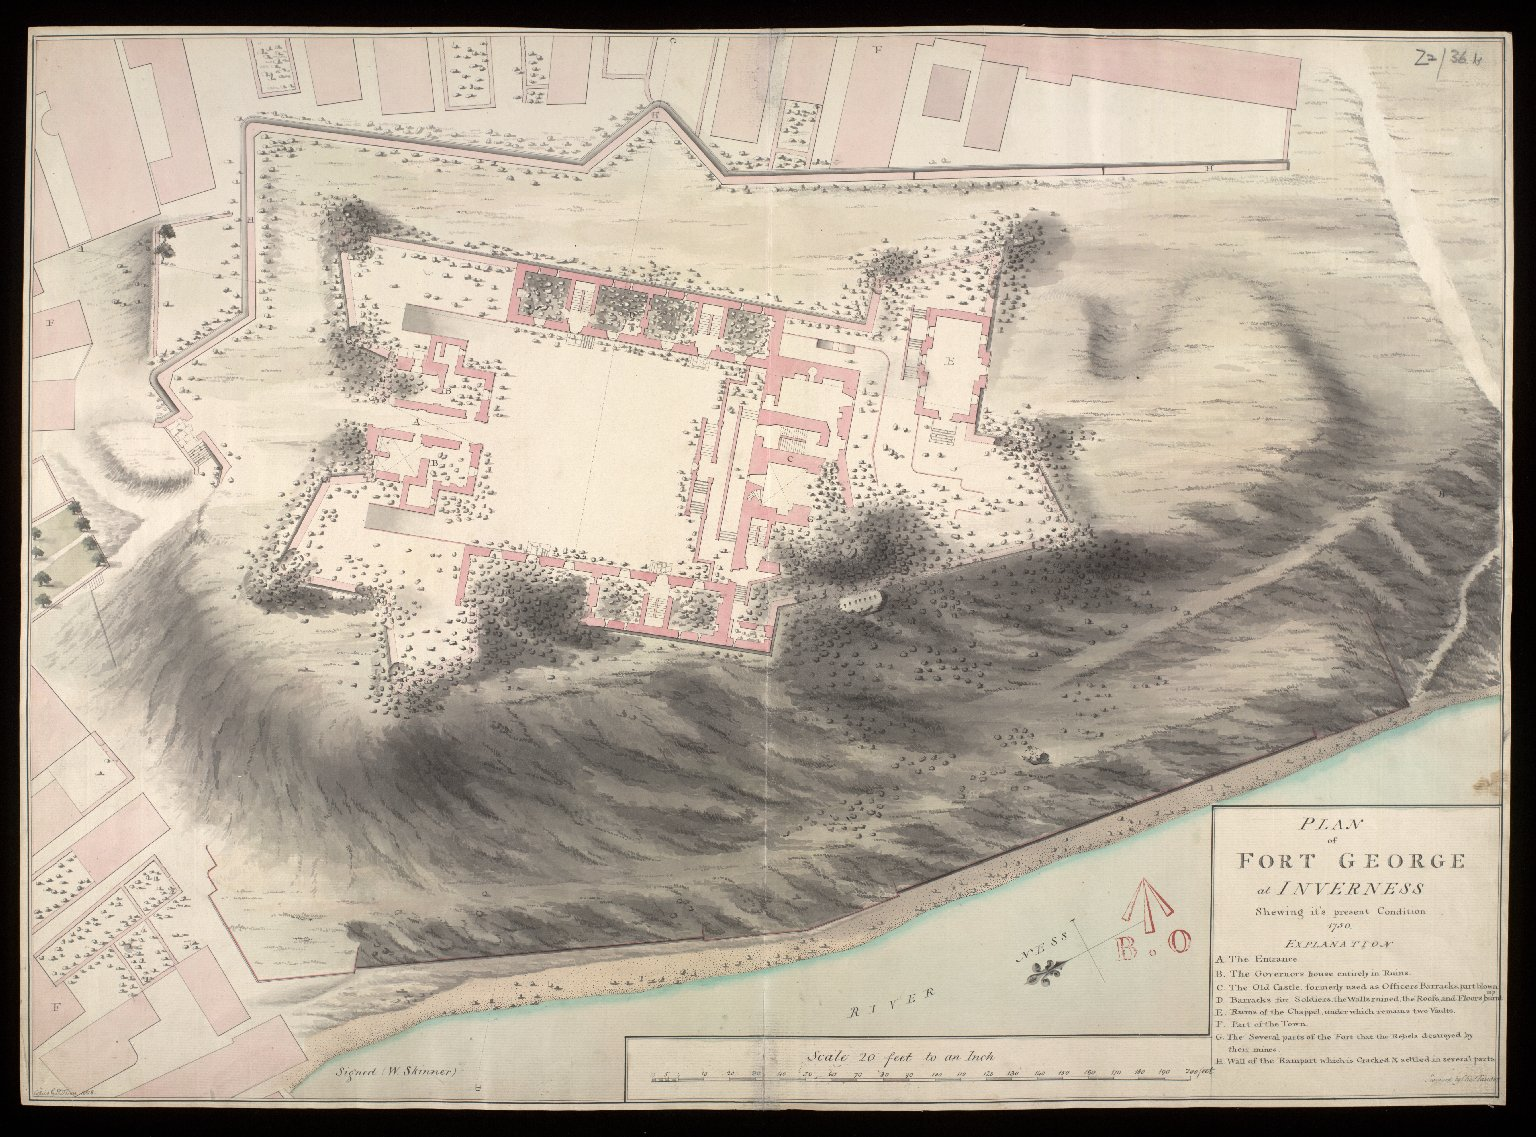 Plan of Fort George at Inverness, shewing it's present condition, 1750 [copy] [1 of 1]